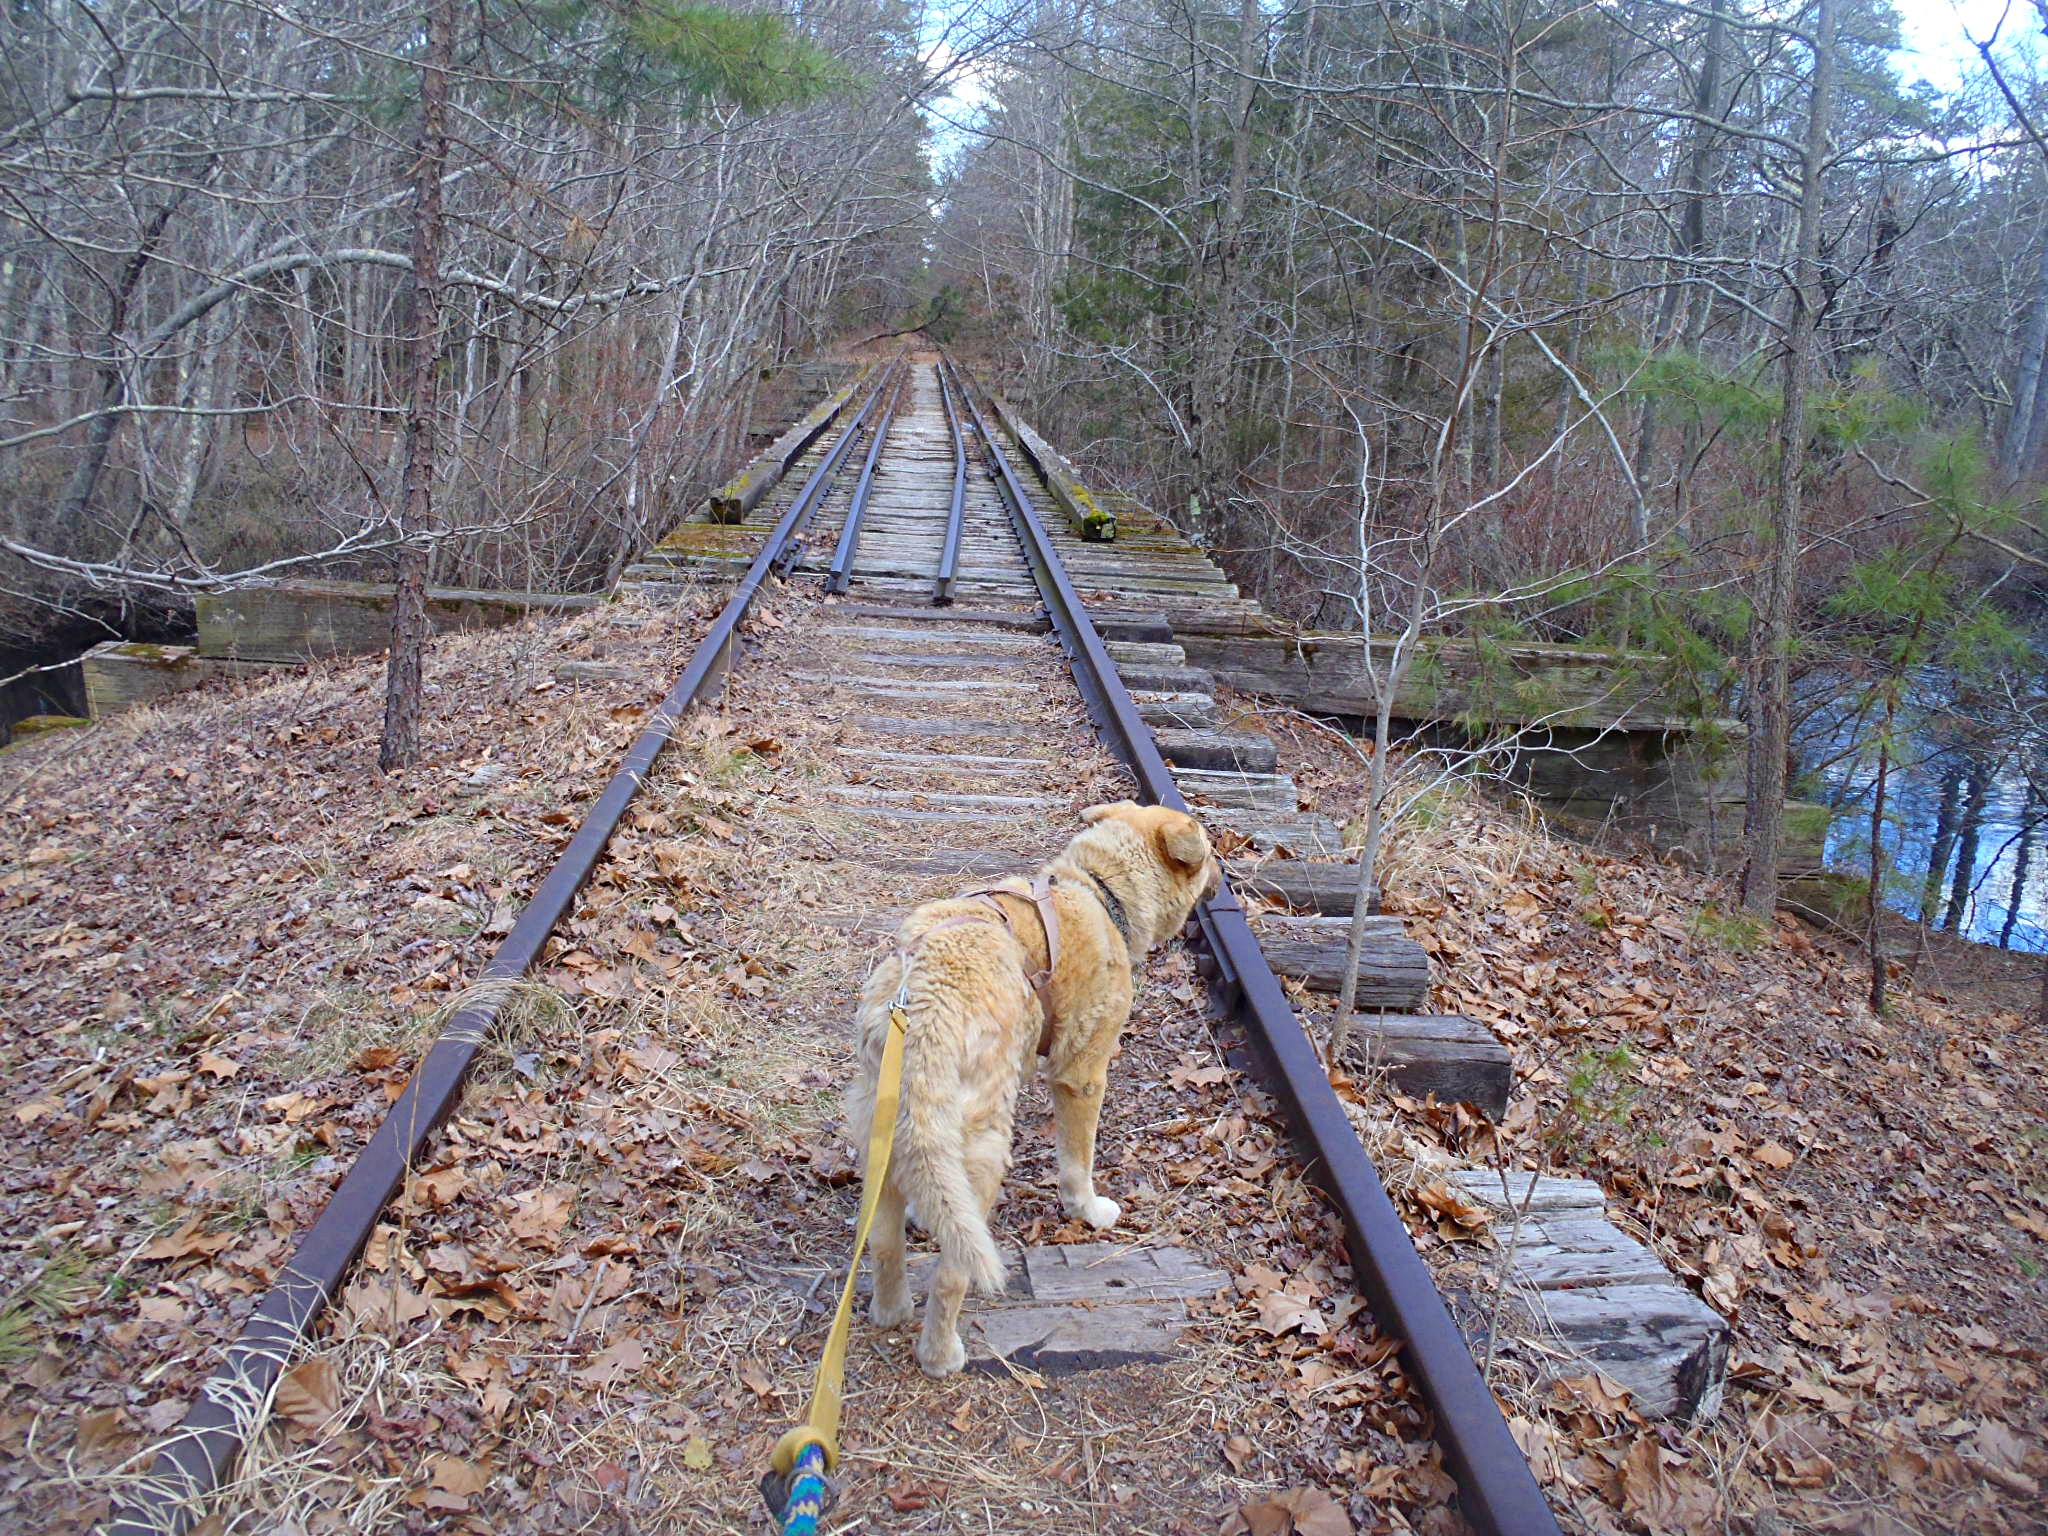 The railroad tracks in Pine Barrens